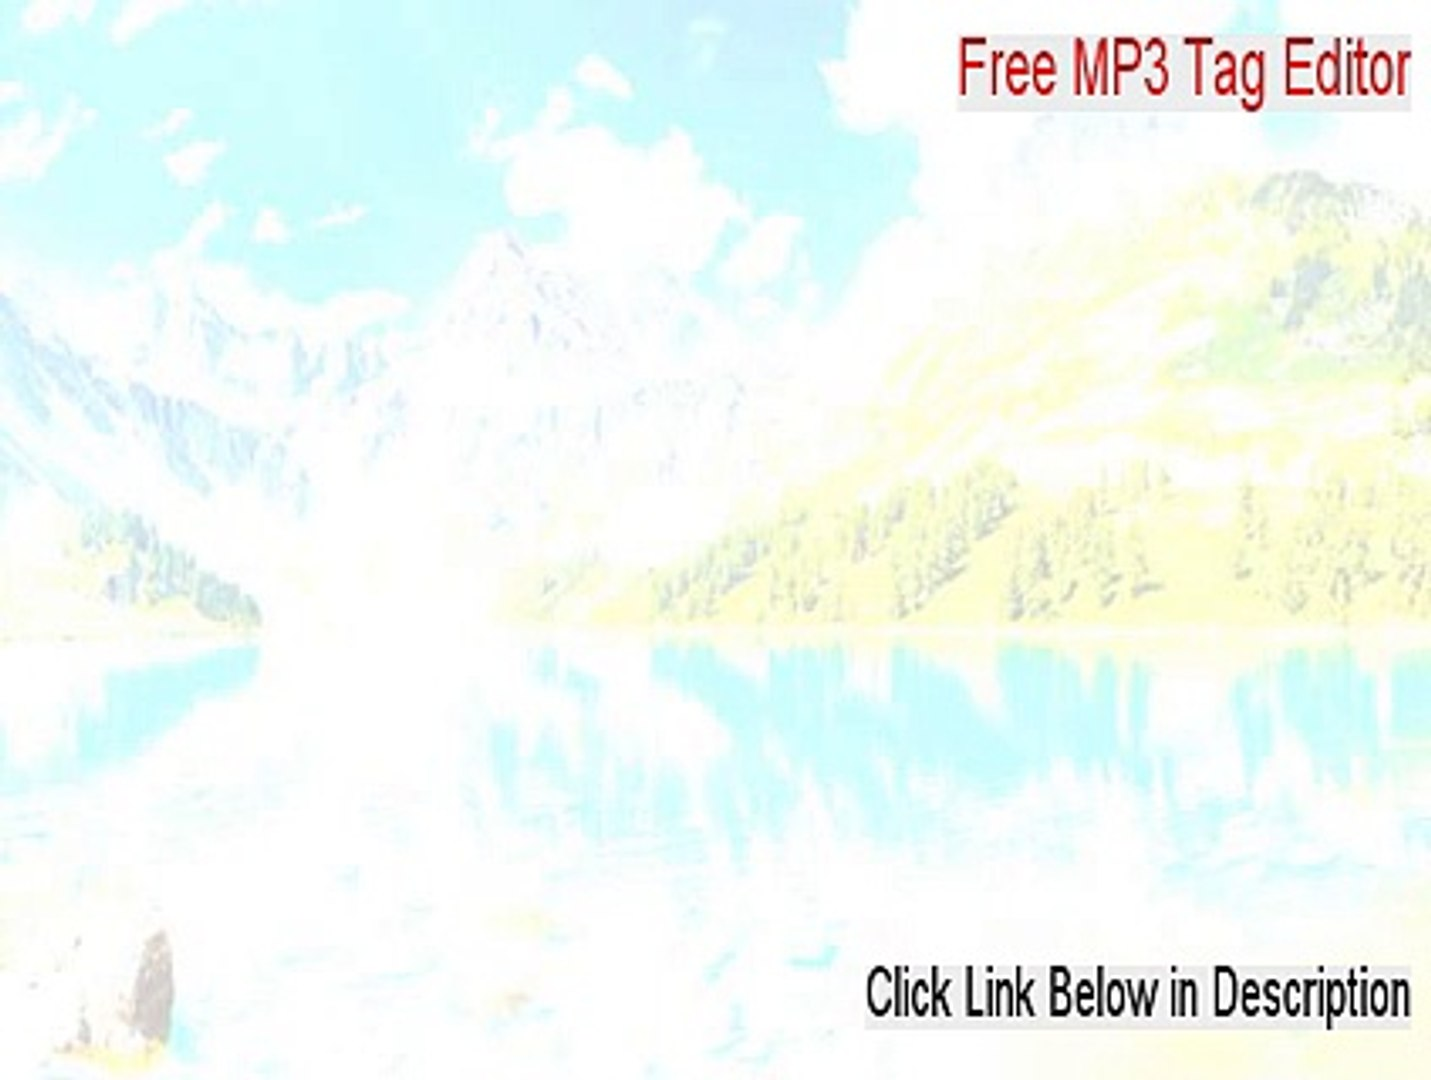 Free MP3 Tag Editor Key Gen - Download Here [2015]